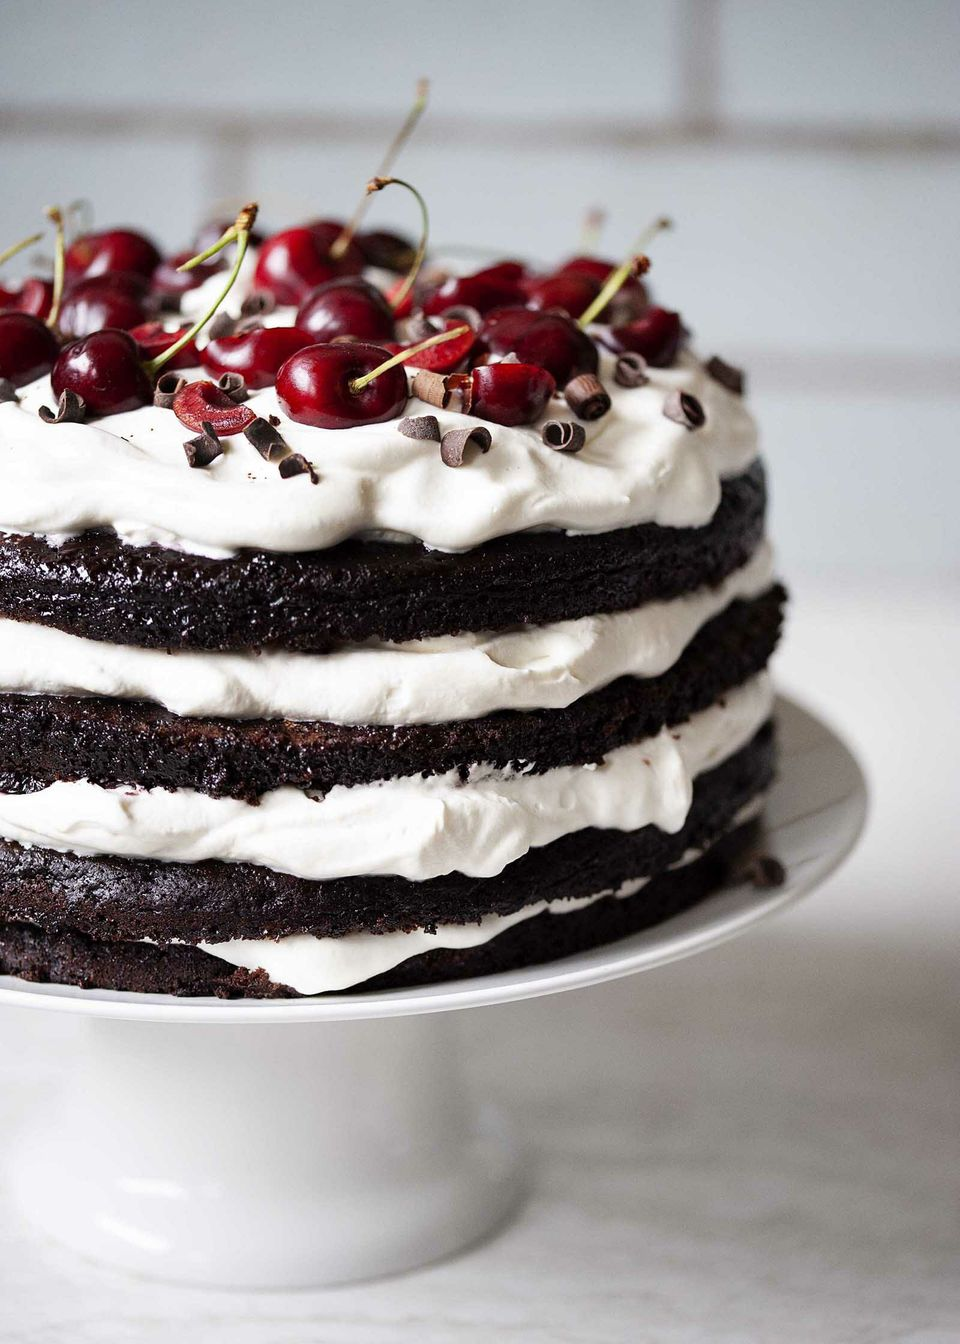 Authentic Black Forest Cake on a cake stand and topped with fresh cherries and chocolate.